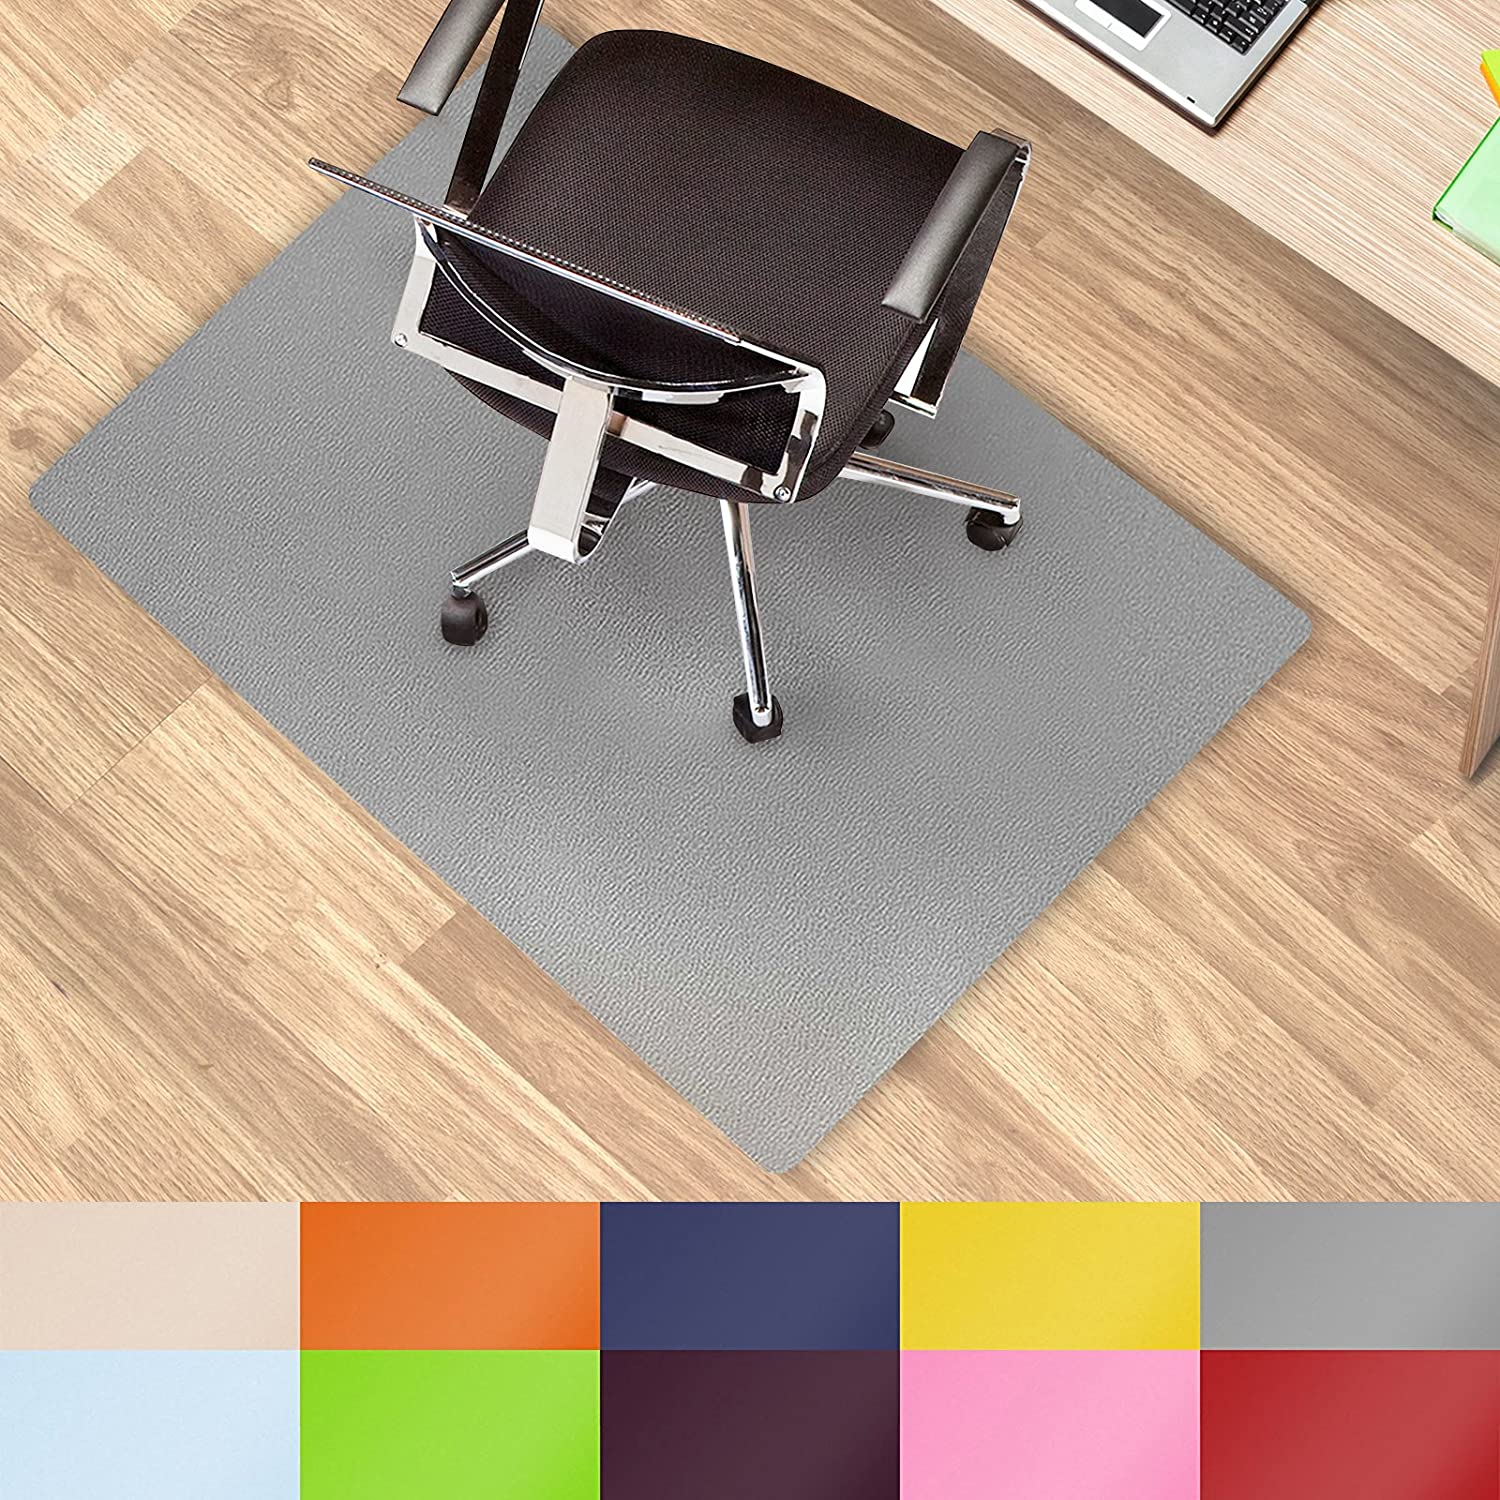 amazon com chair mat for hard floors polypropylene chair floor